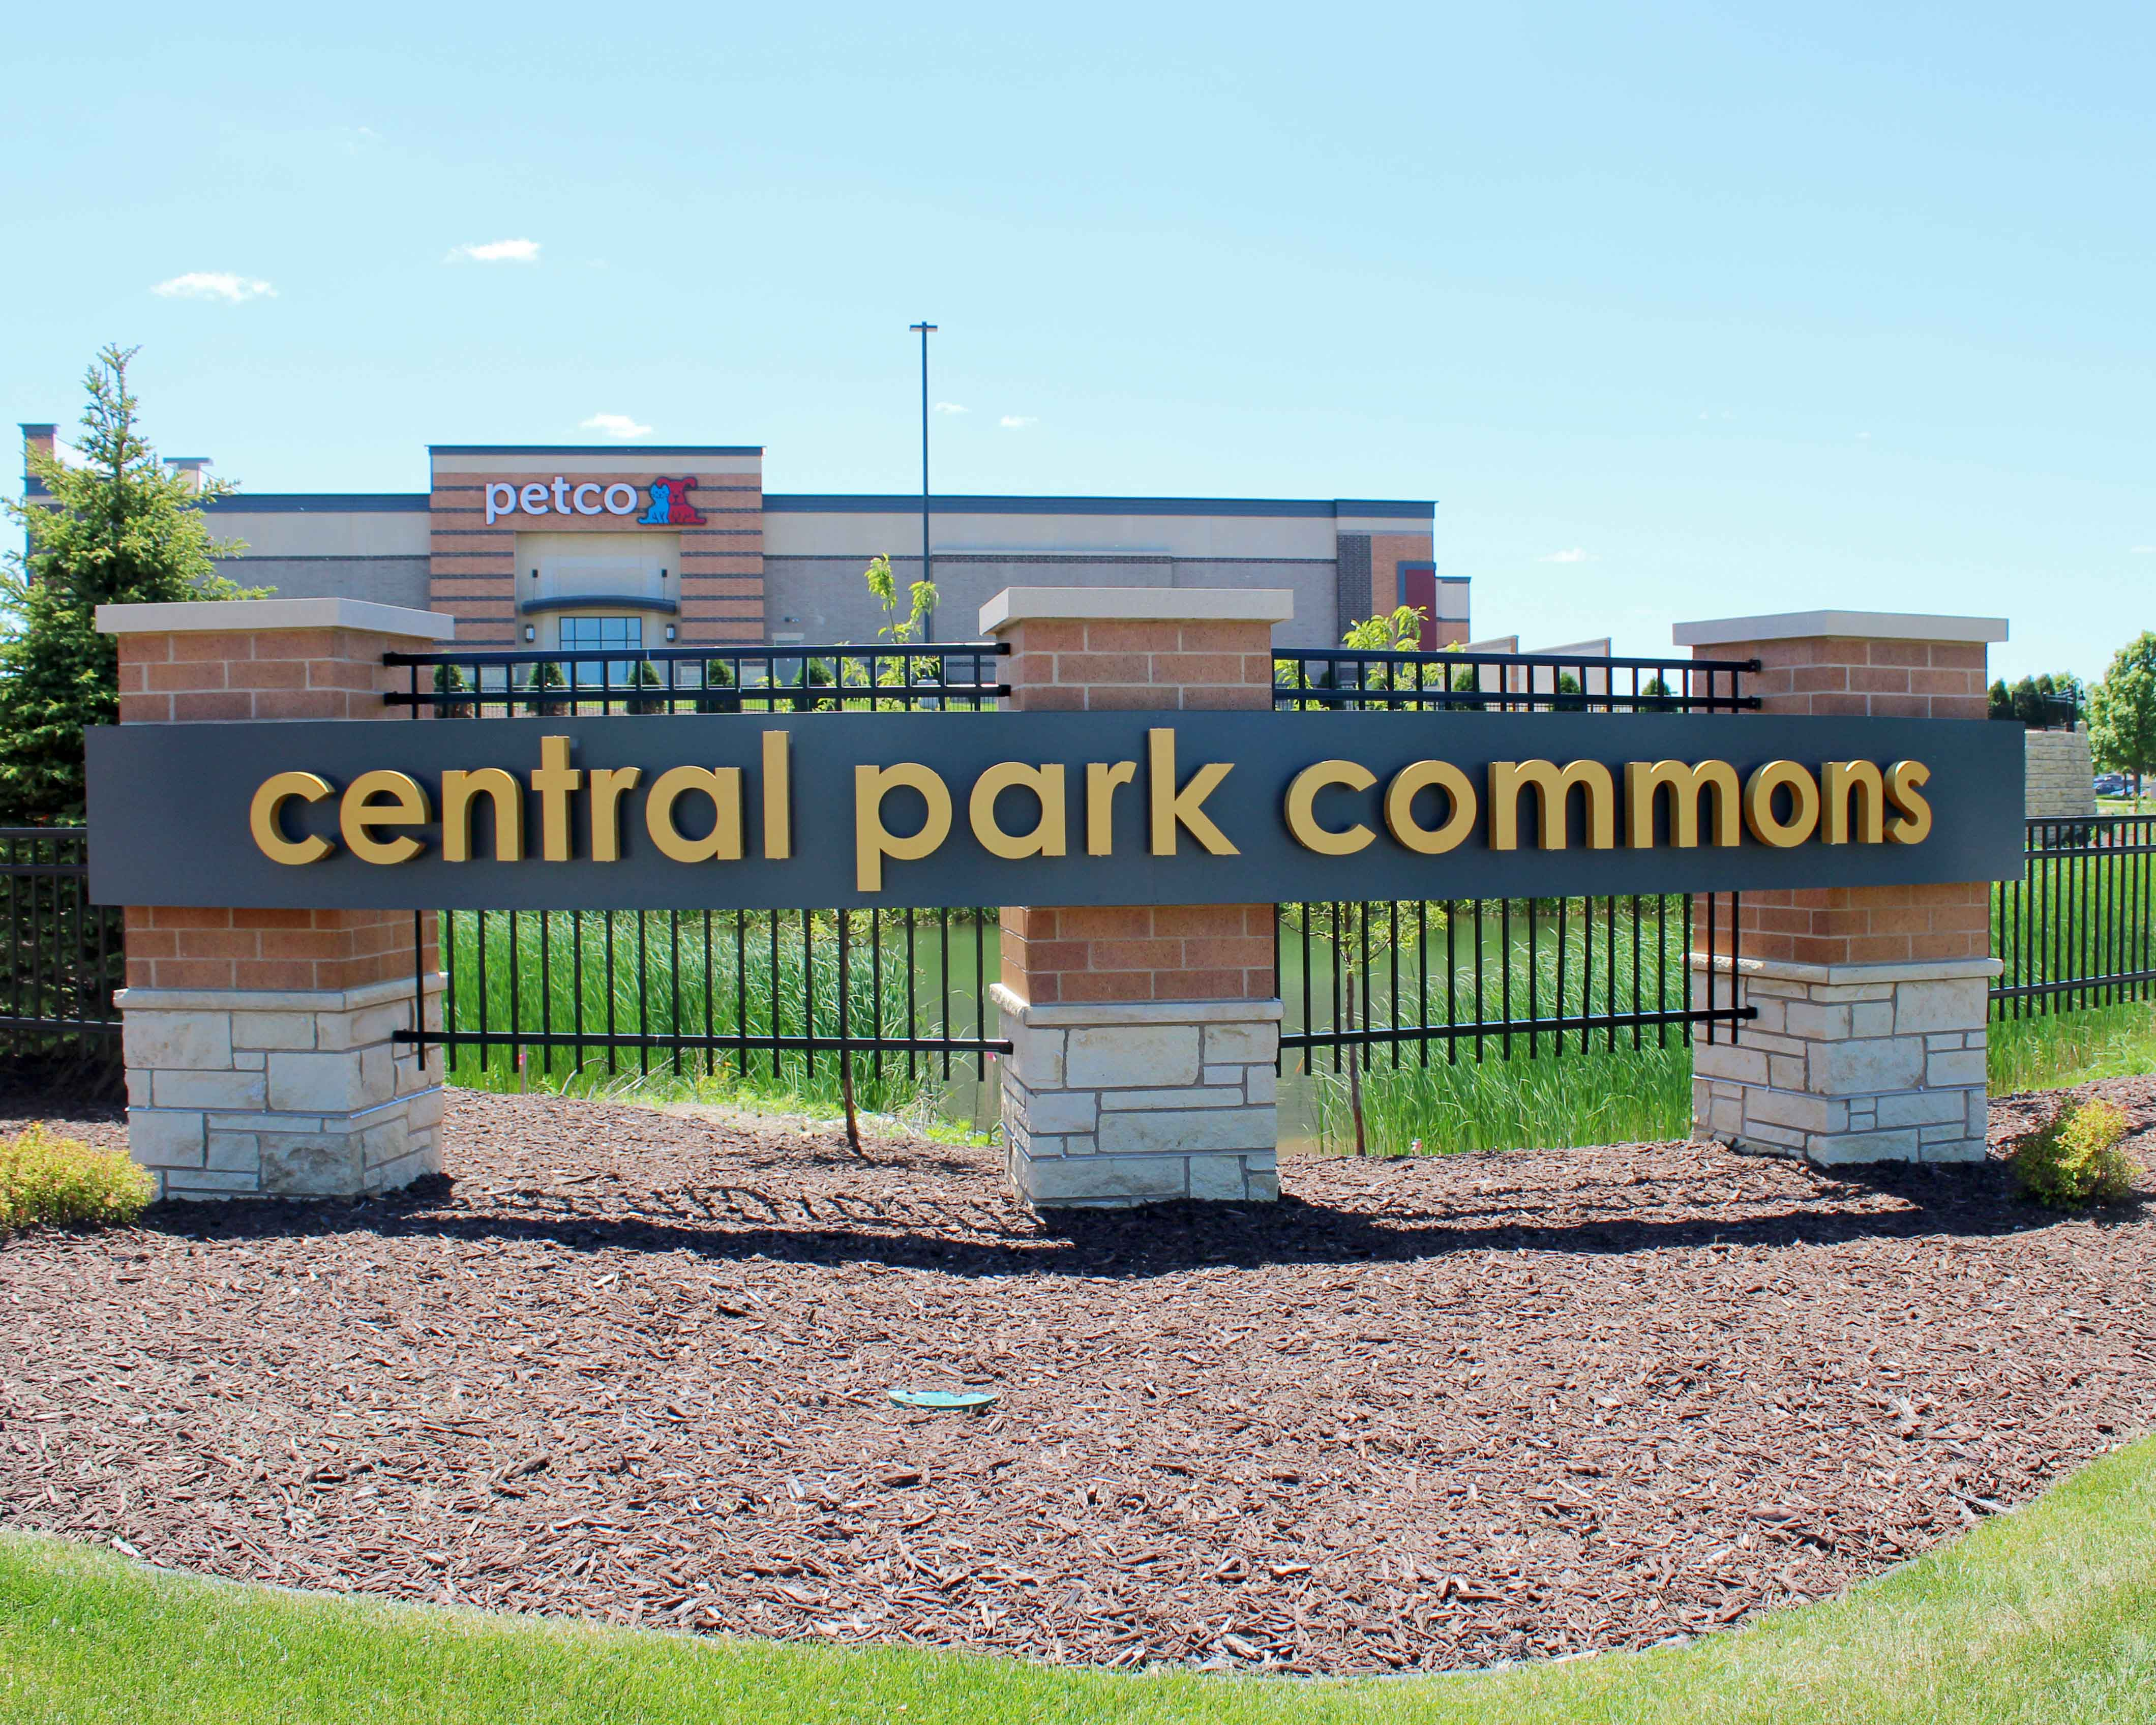 Central Park Commons main entrance sign, designed and built by Spectrum Signs